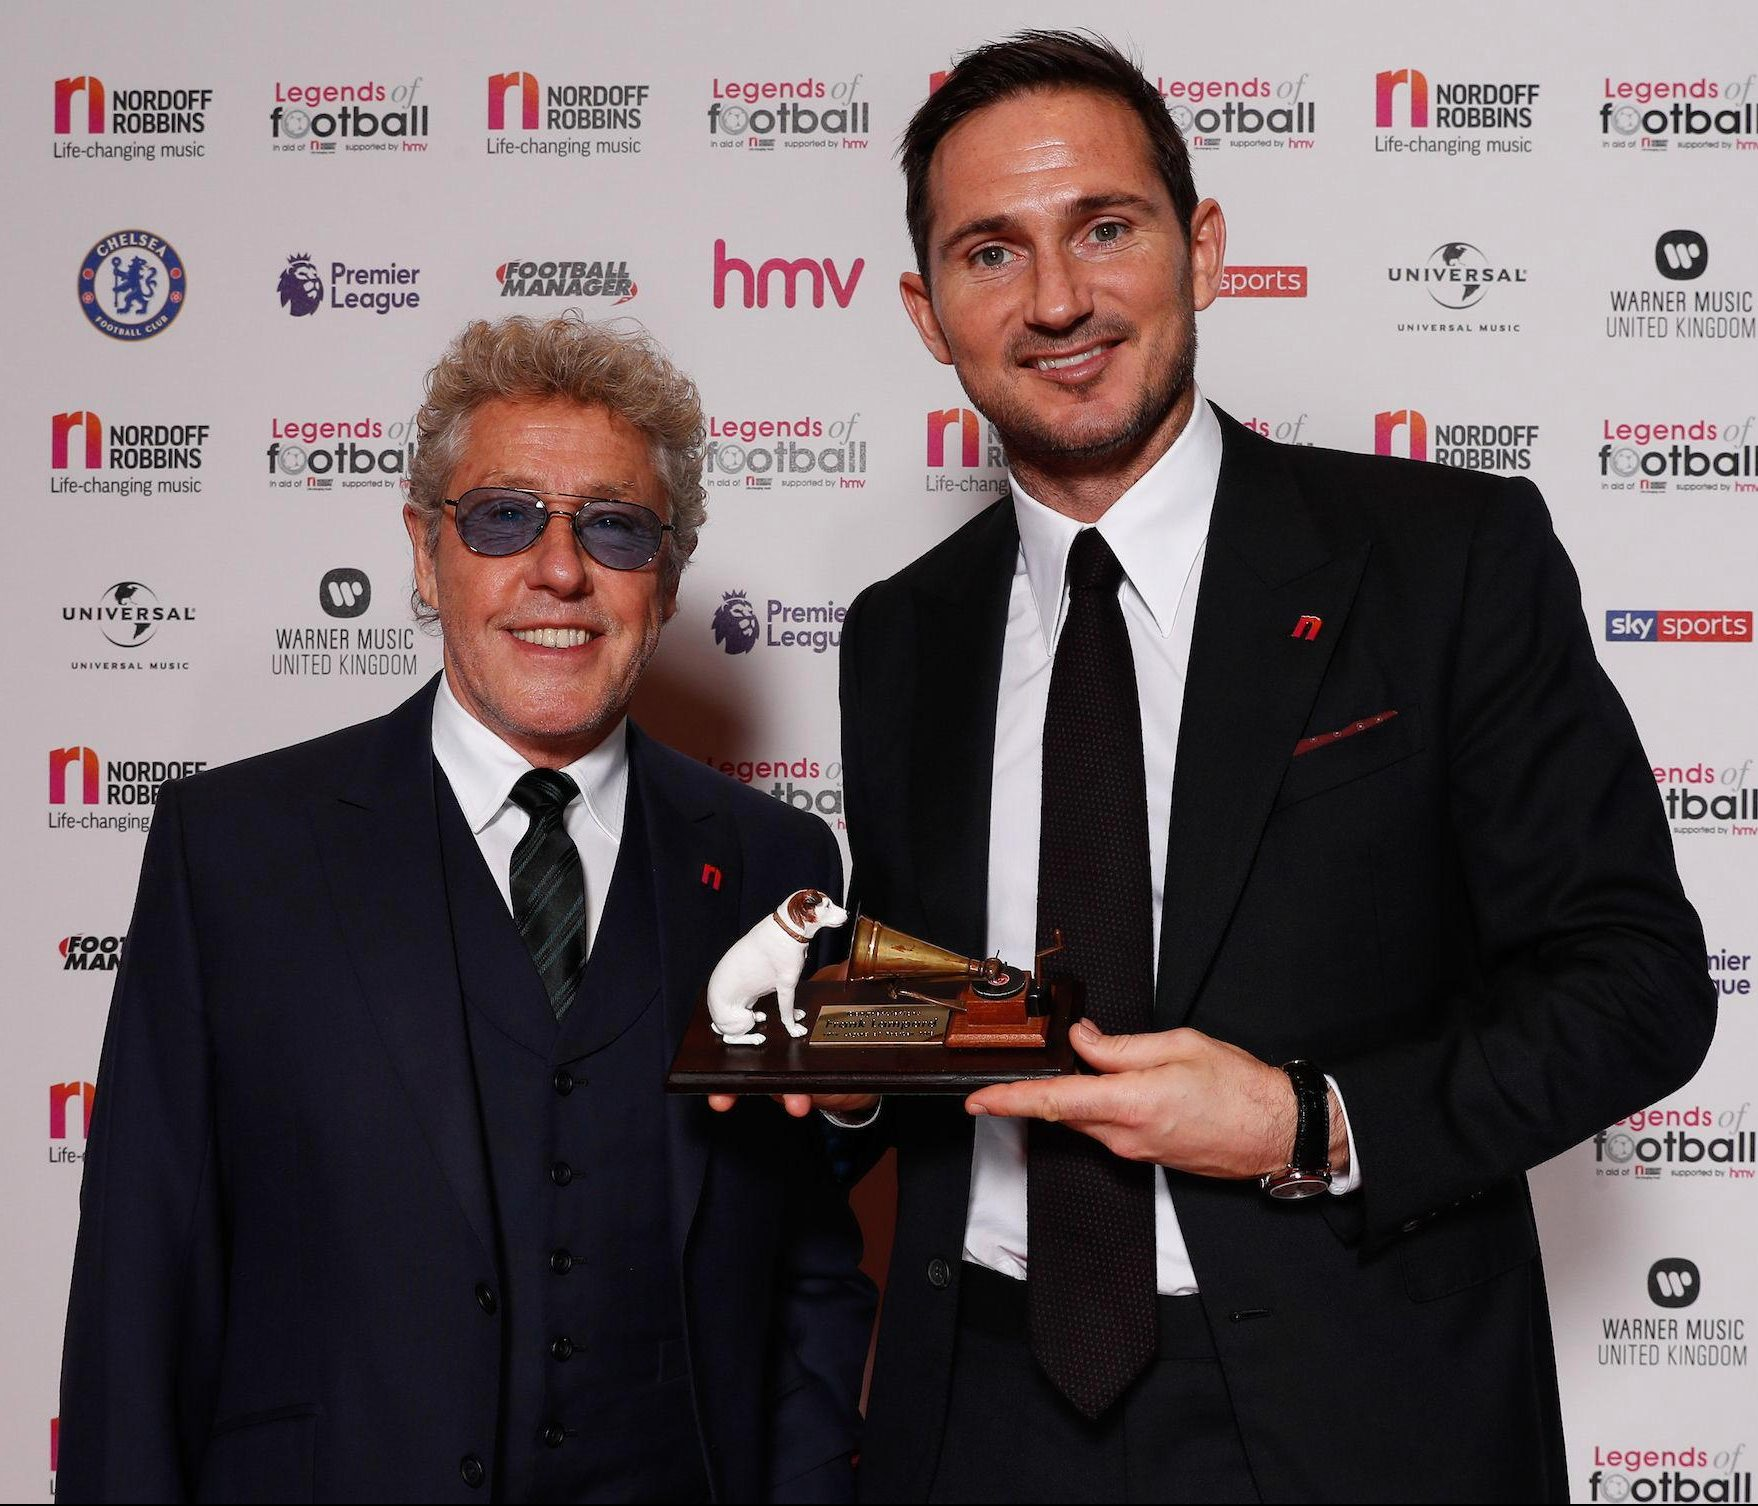 He was presented with the accolade by The Who front man Roger Daltrey